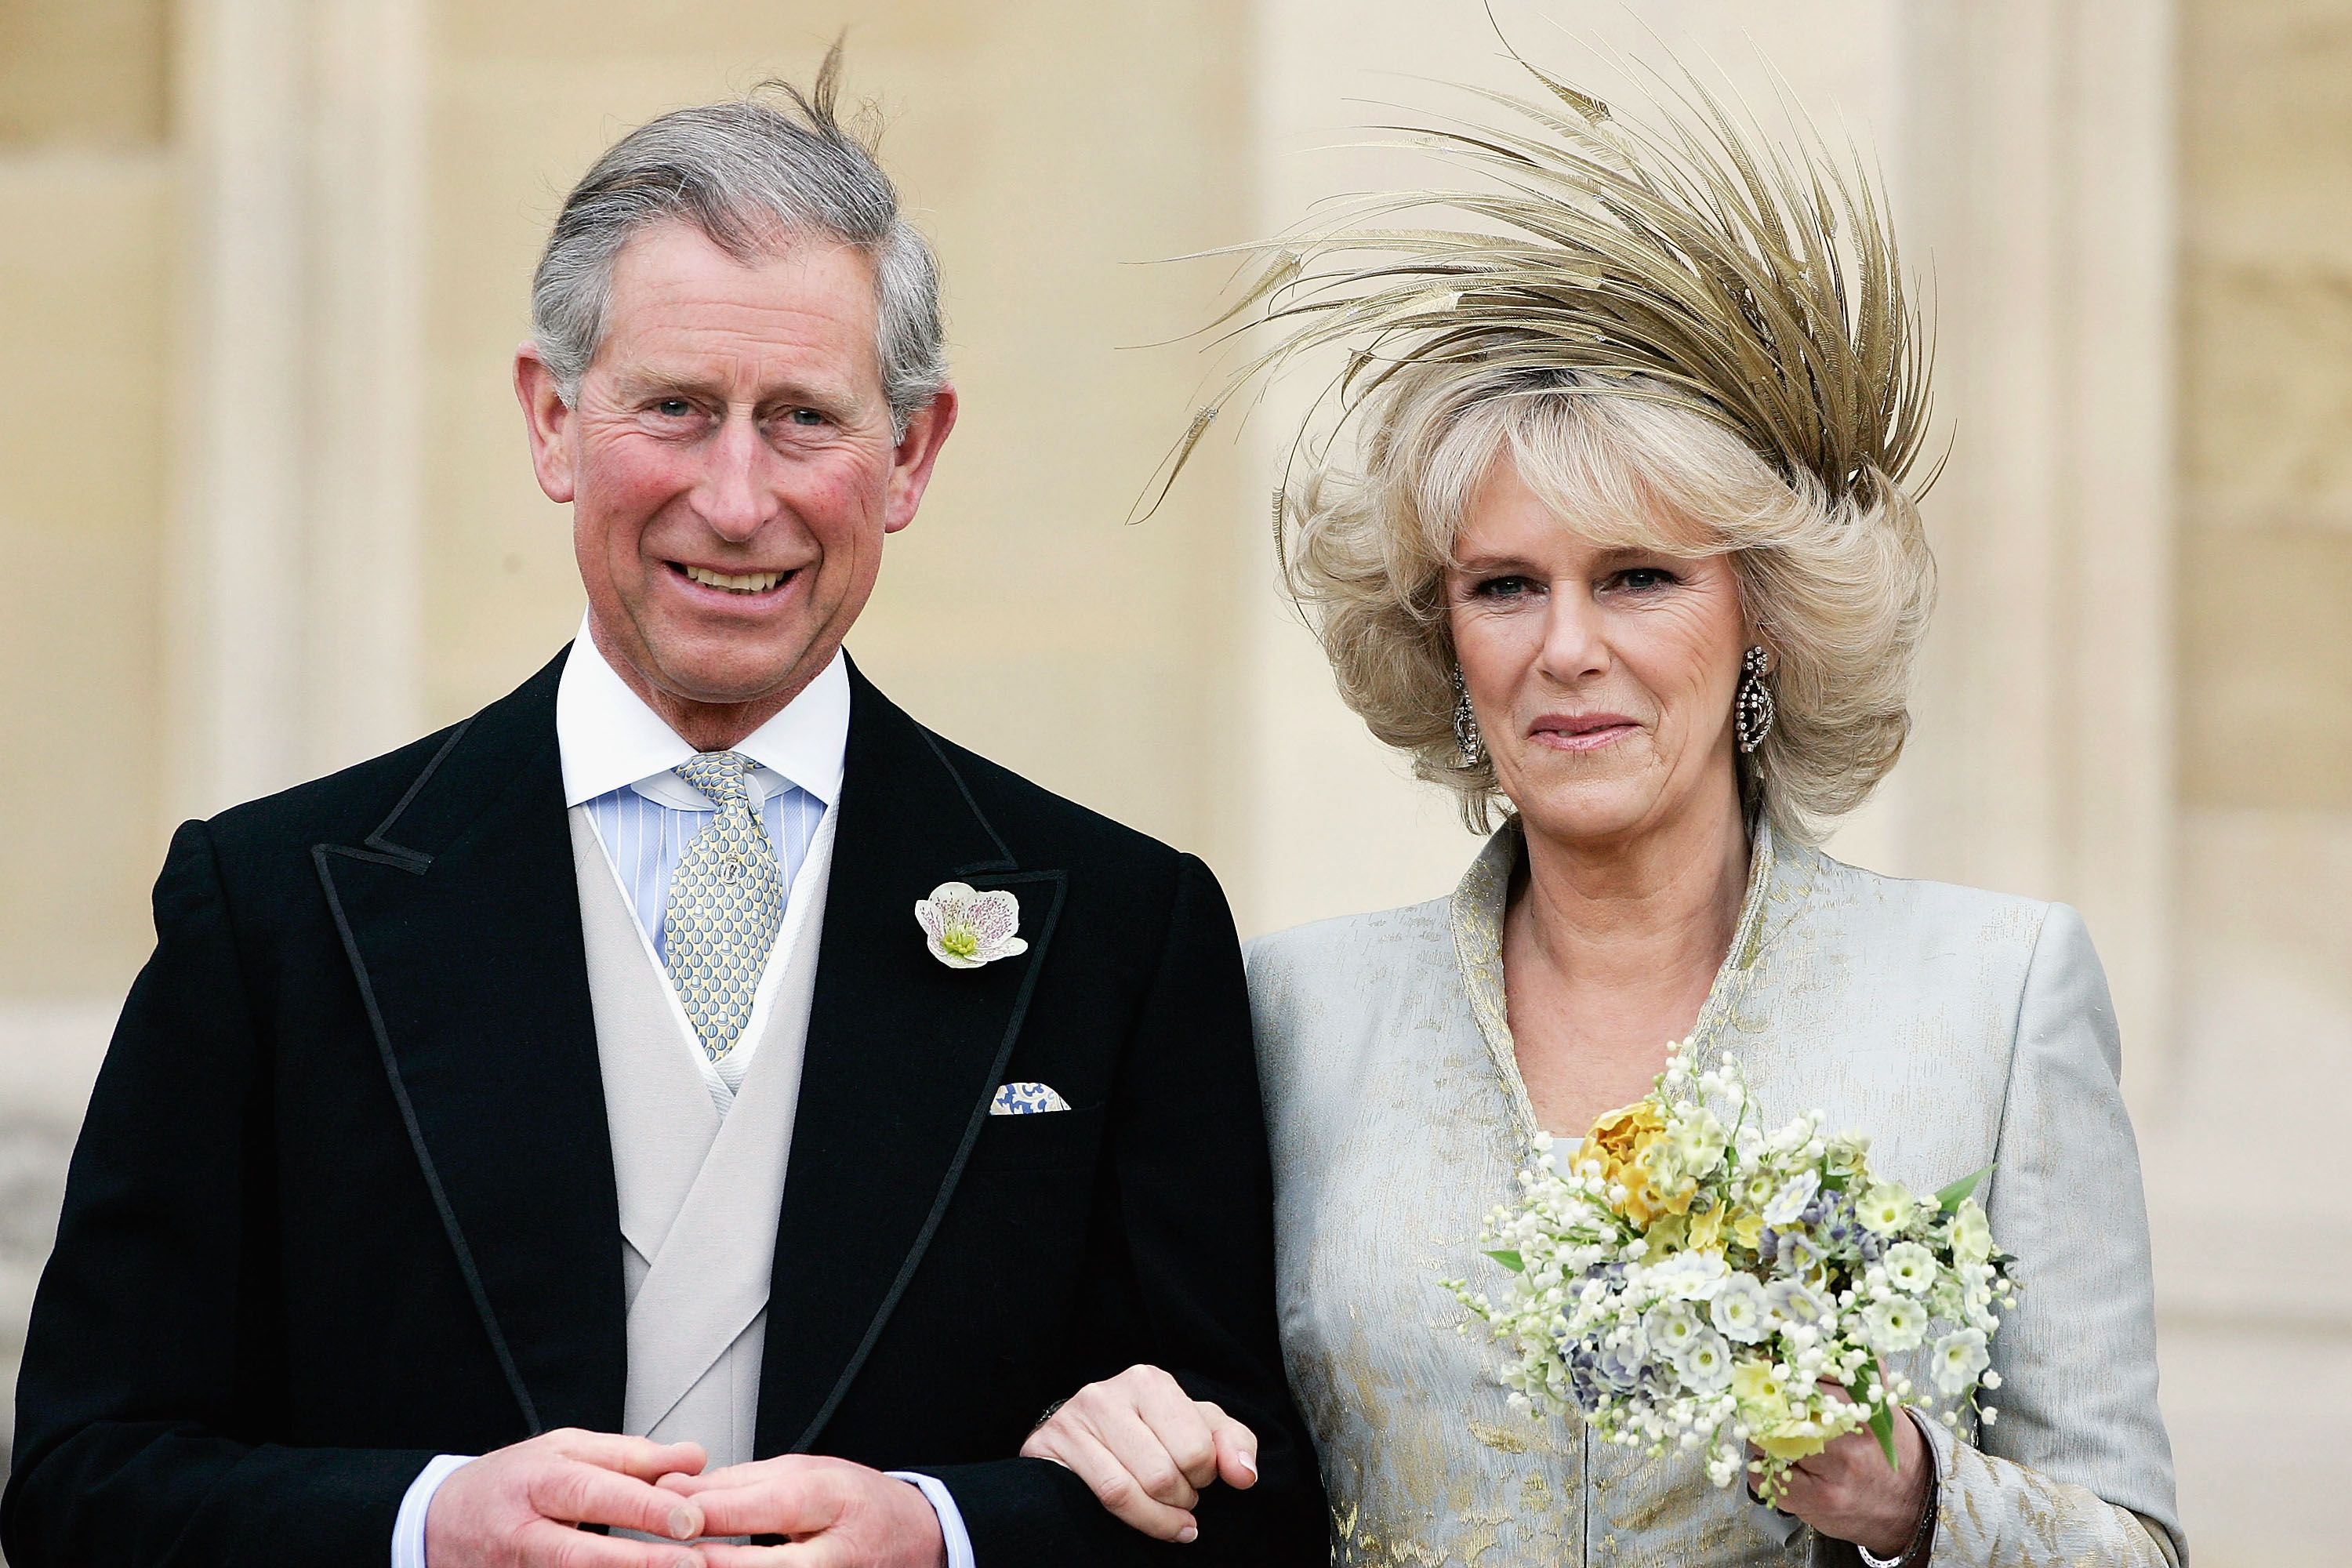 Prince Charles and Duchess Camilla leave the Service of Prayer and Dedication blessing at their marriage on April 9, 2005, in Berkshire, England | Photo: Tim Graham Photo Library/Getty Images